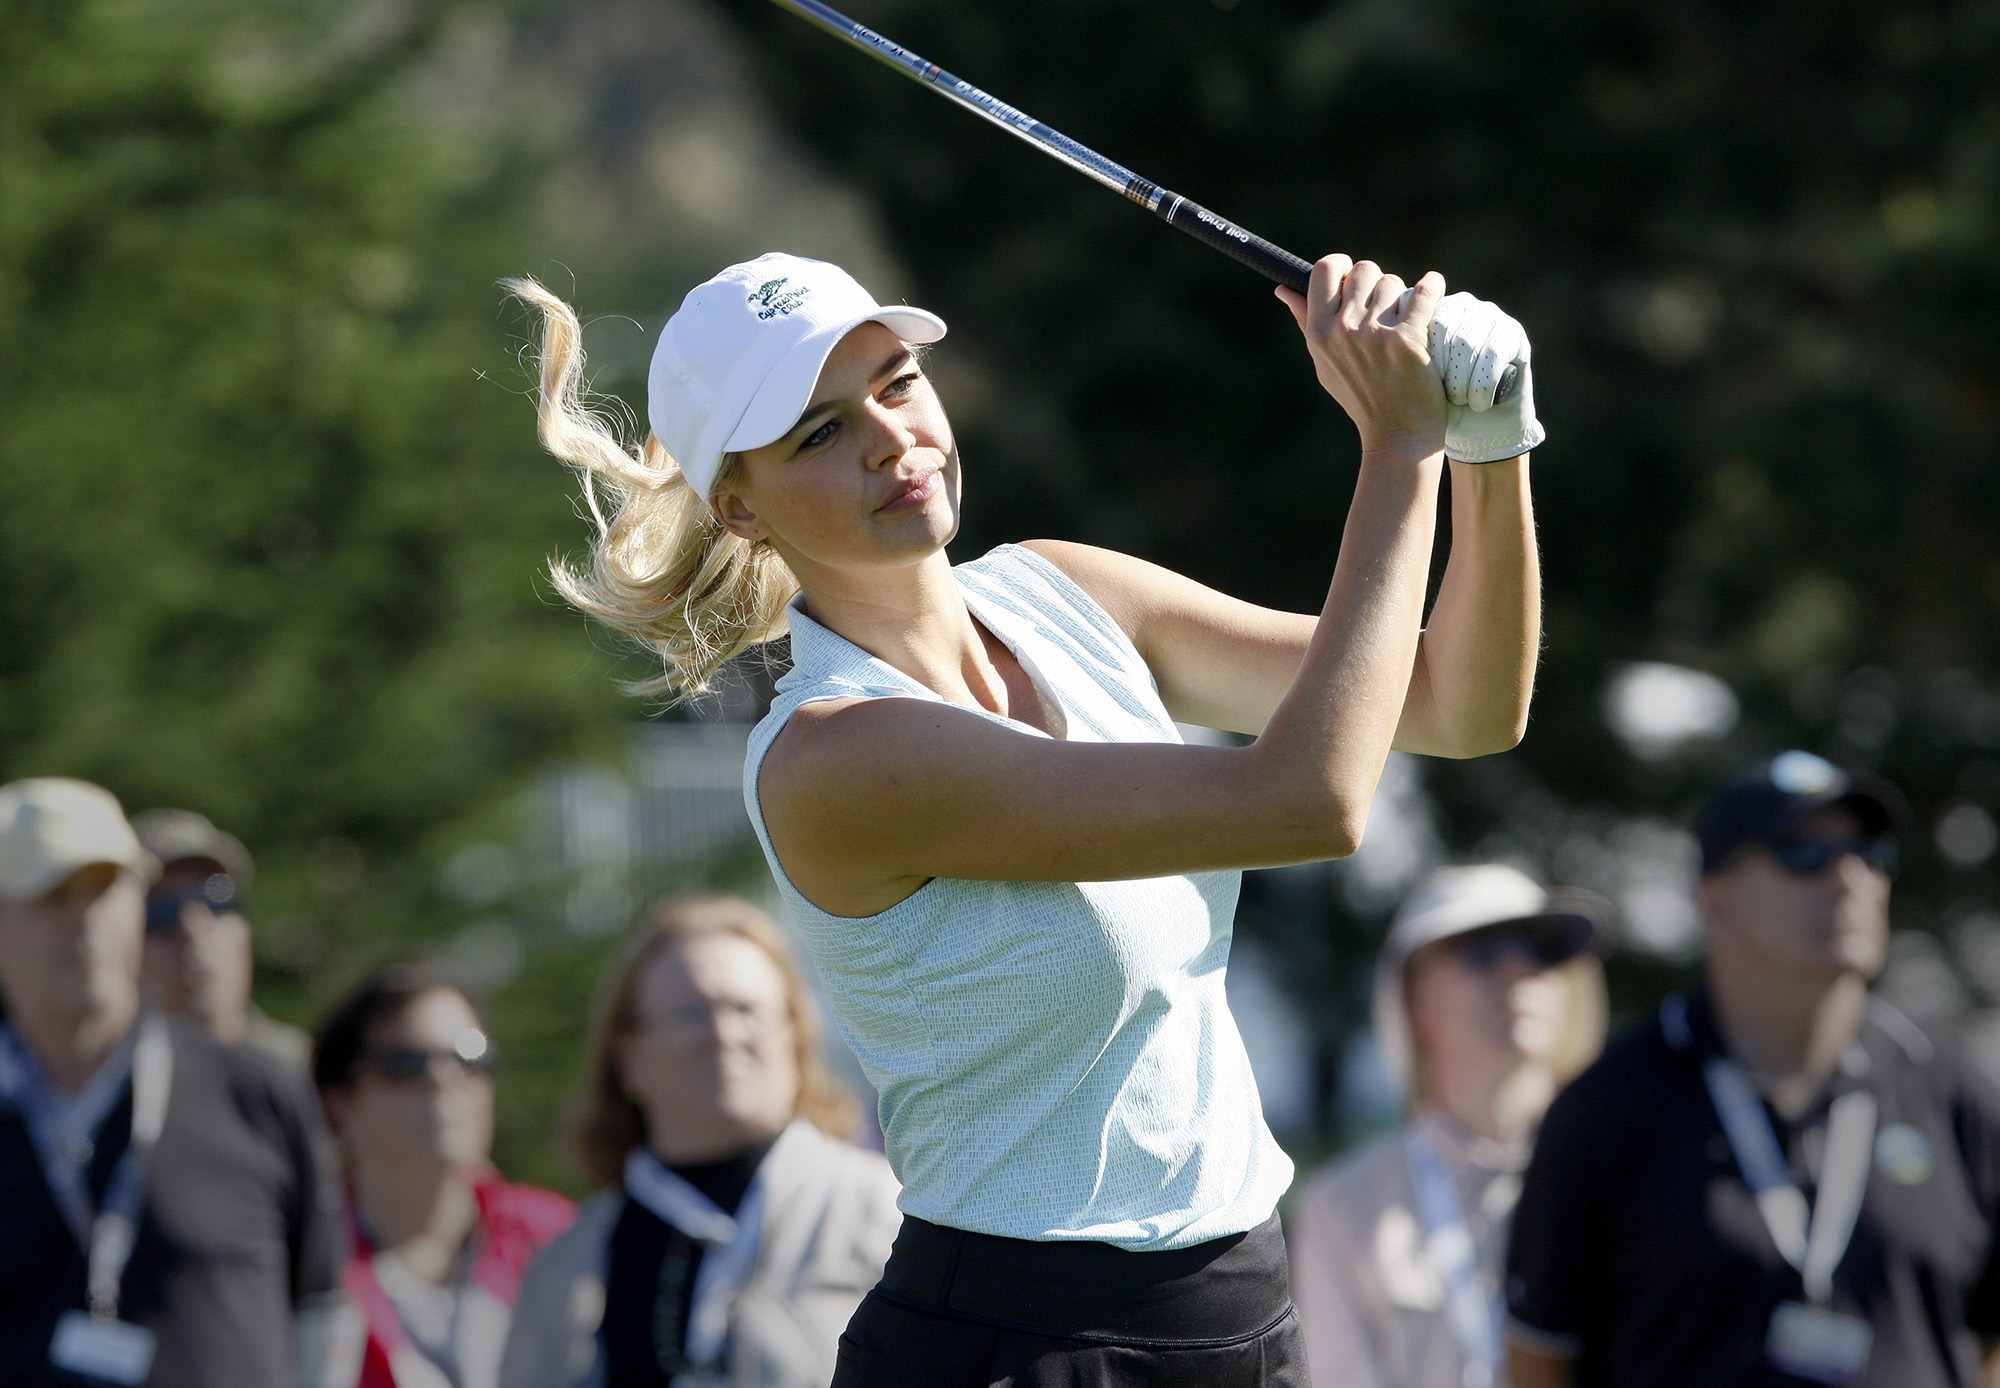 Actress Kelly Rohrbach during the 3M Celebrity Shoot Out at the Pebble Beach Golf Links in Pebble Beach on Wednesday Feb. 7 2018